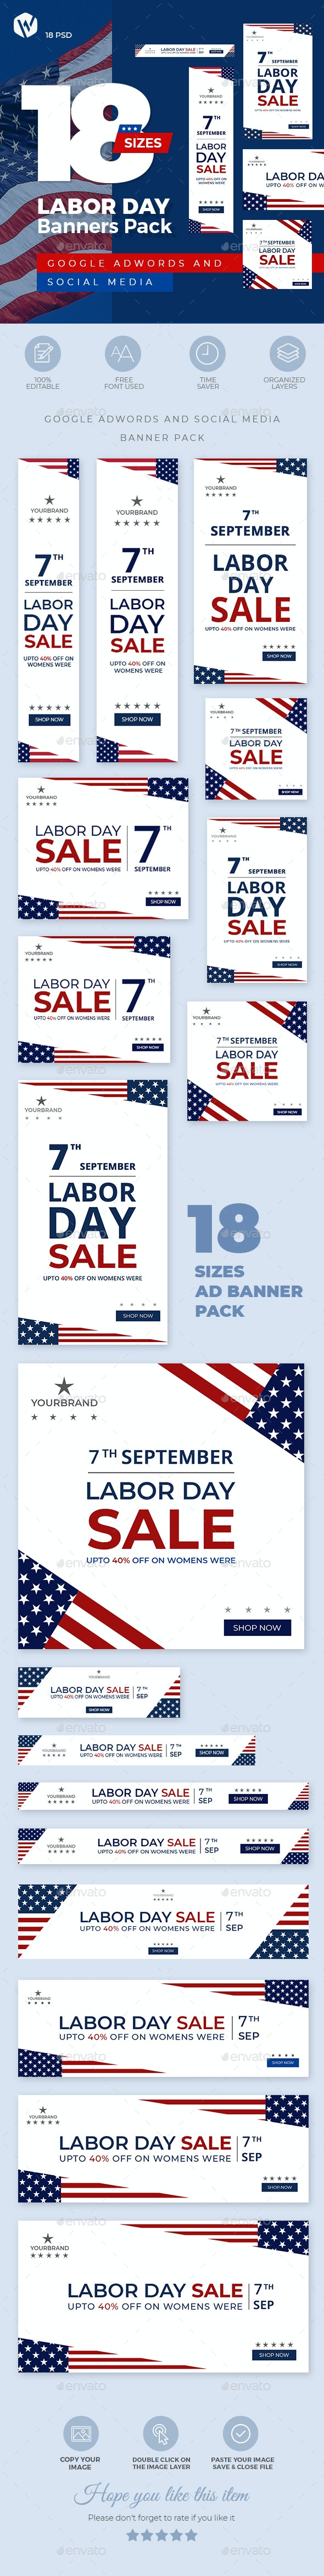 18 Labor Day Ad Banners - Banners & Ads Web Elements